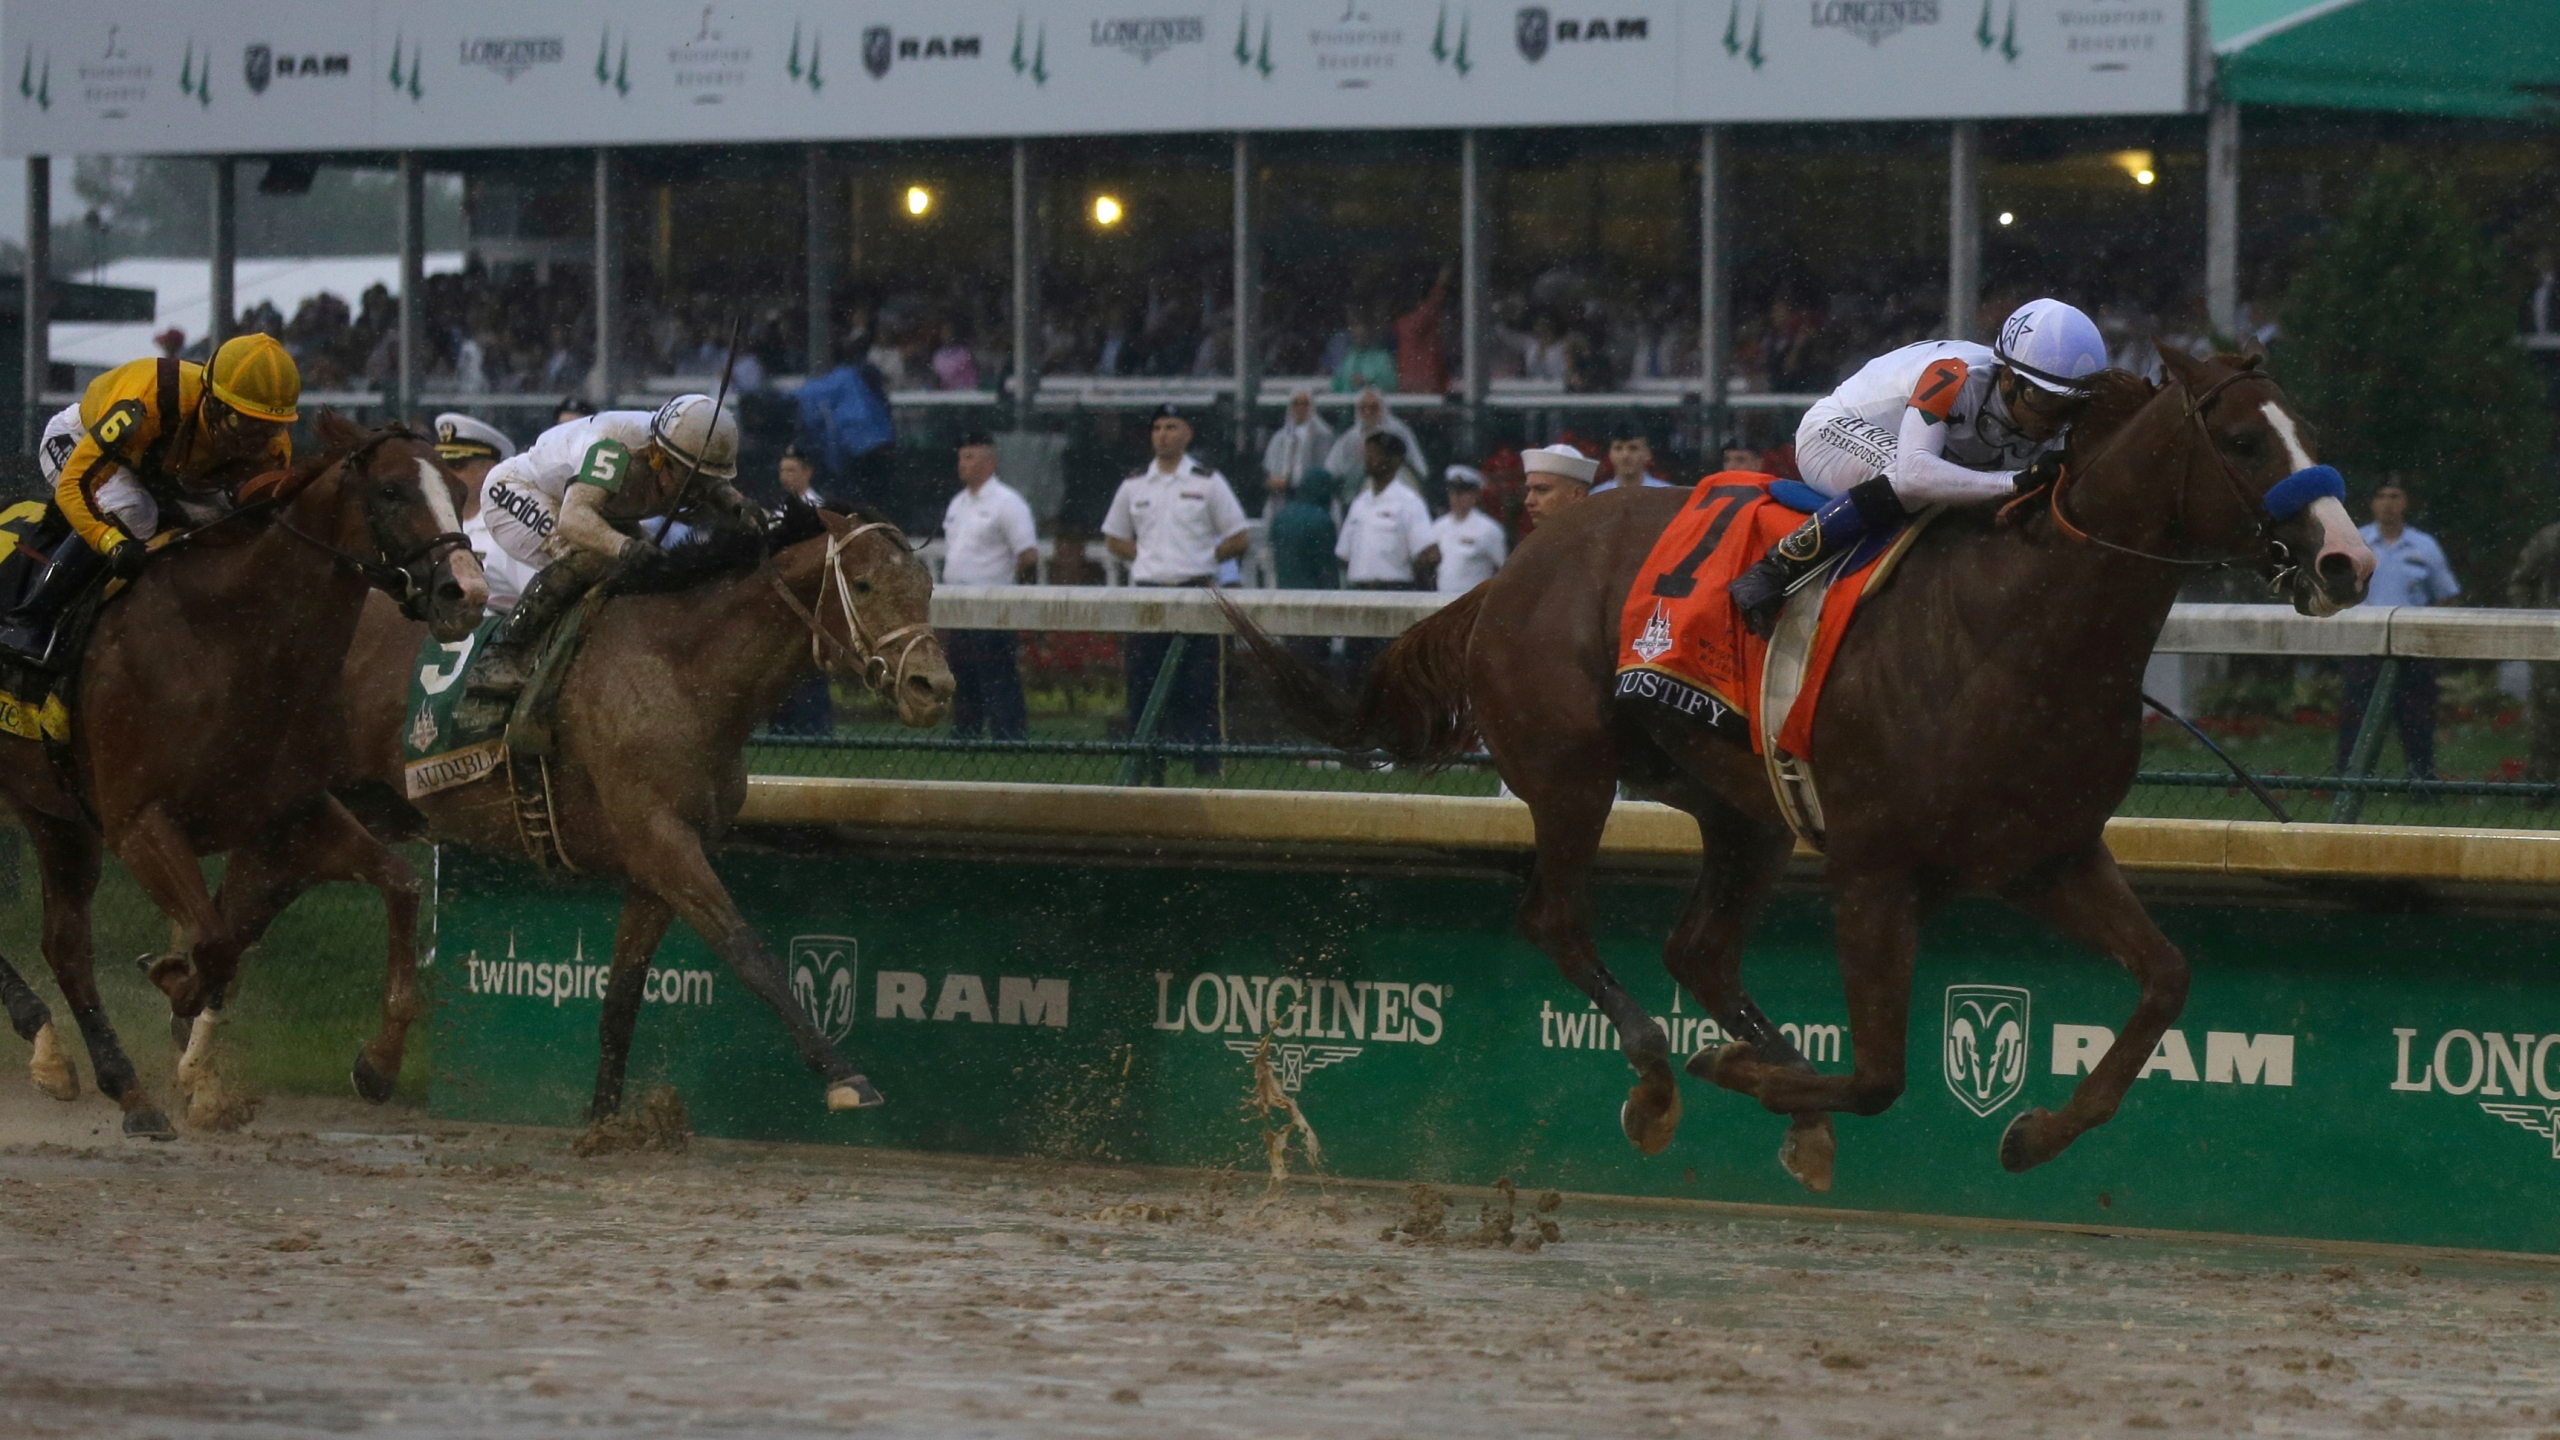 Kentucky Derby Horse Racing justify mike smith